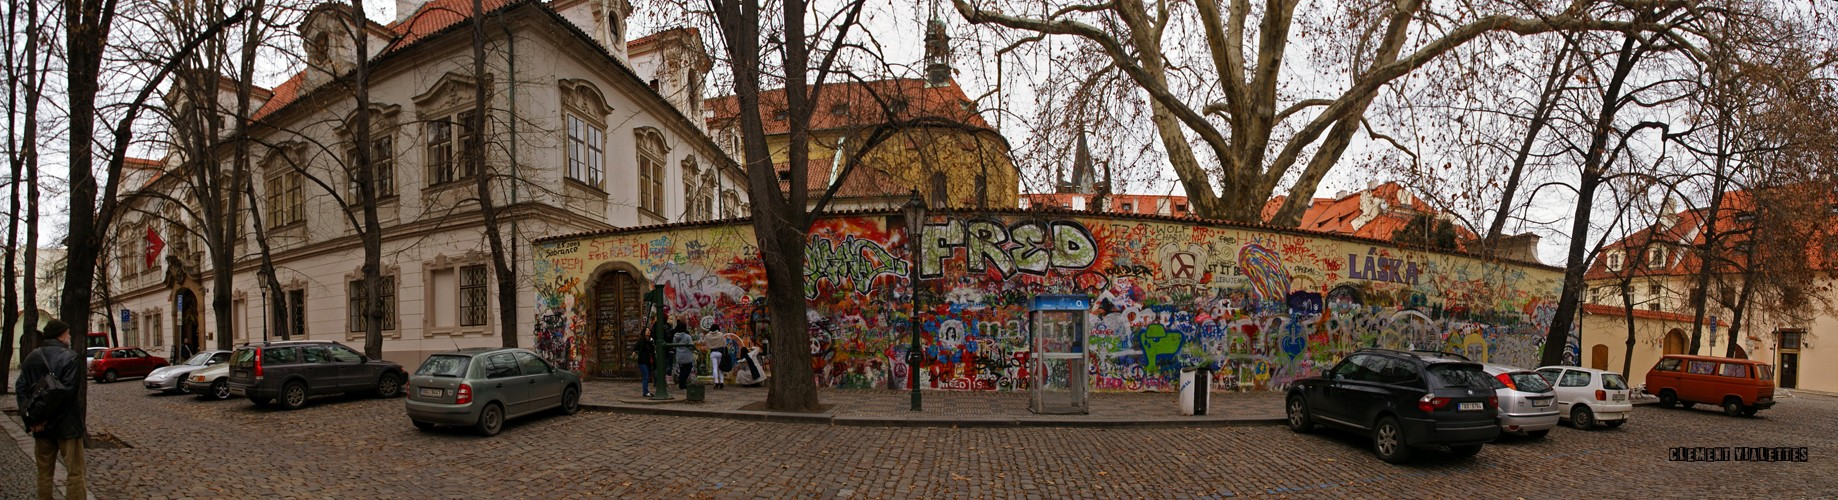 2010-03-prague--mur-john-lennon -panoramique.jpg